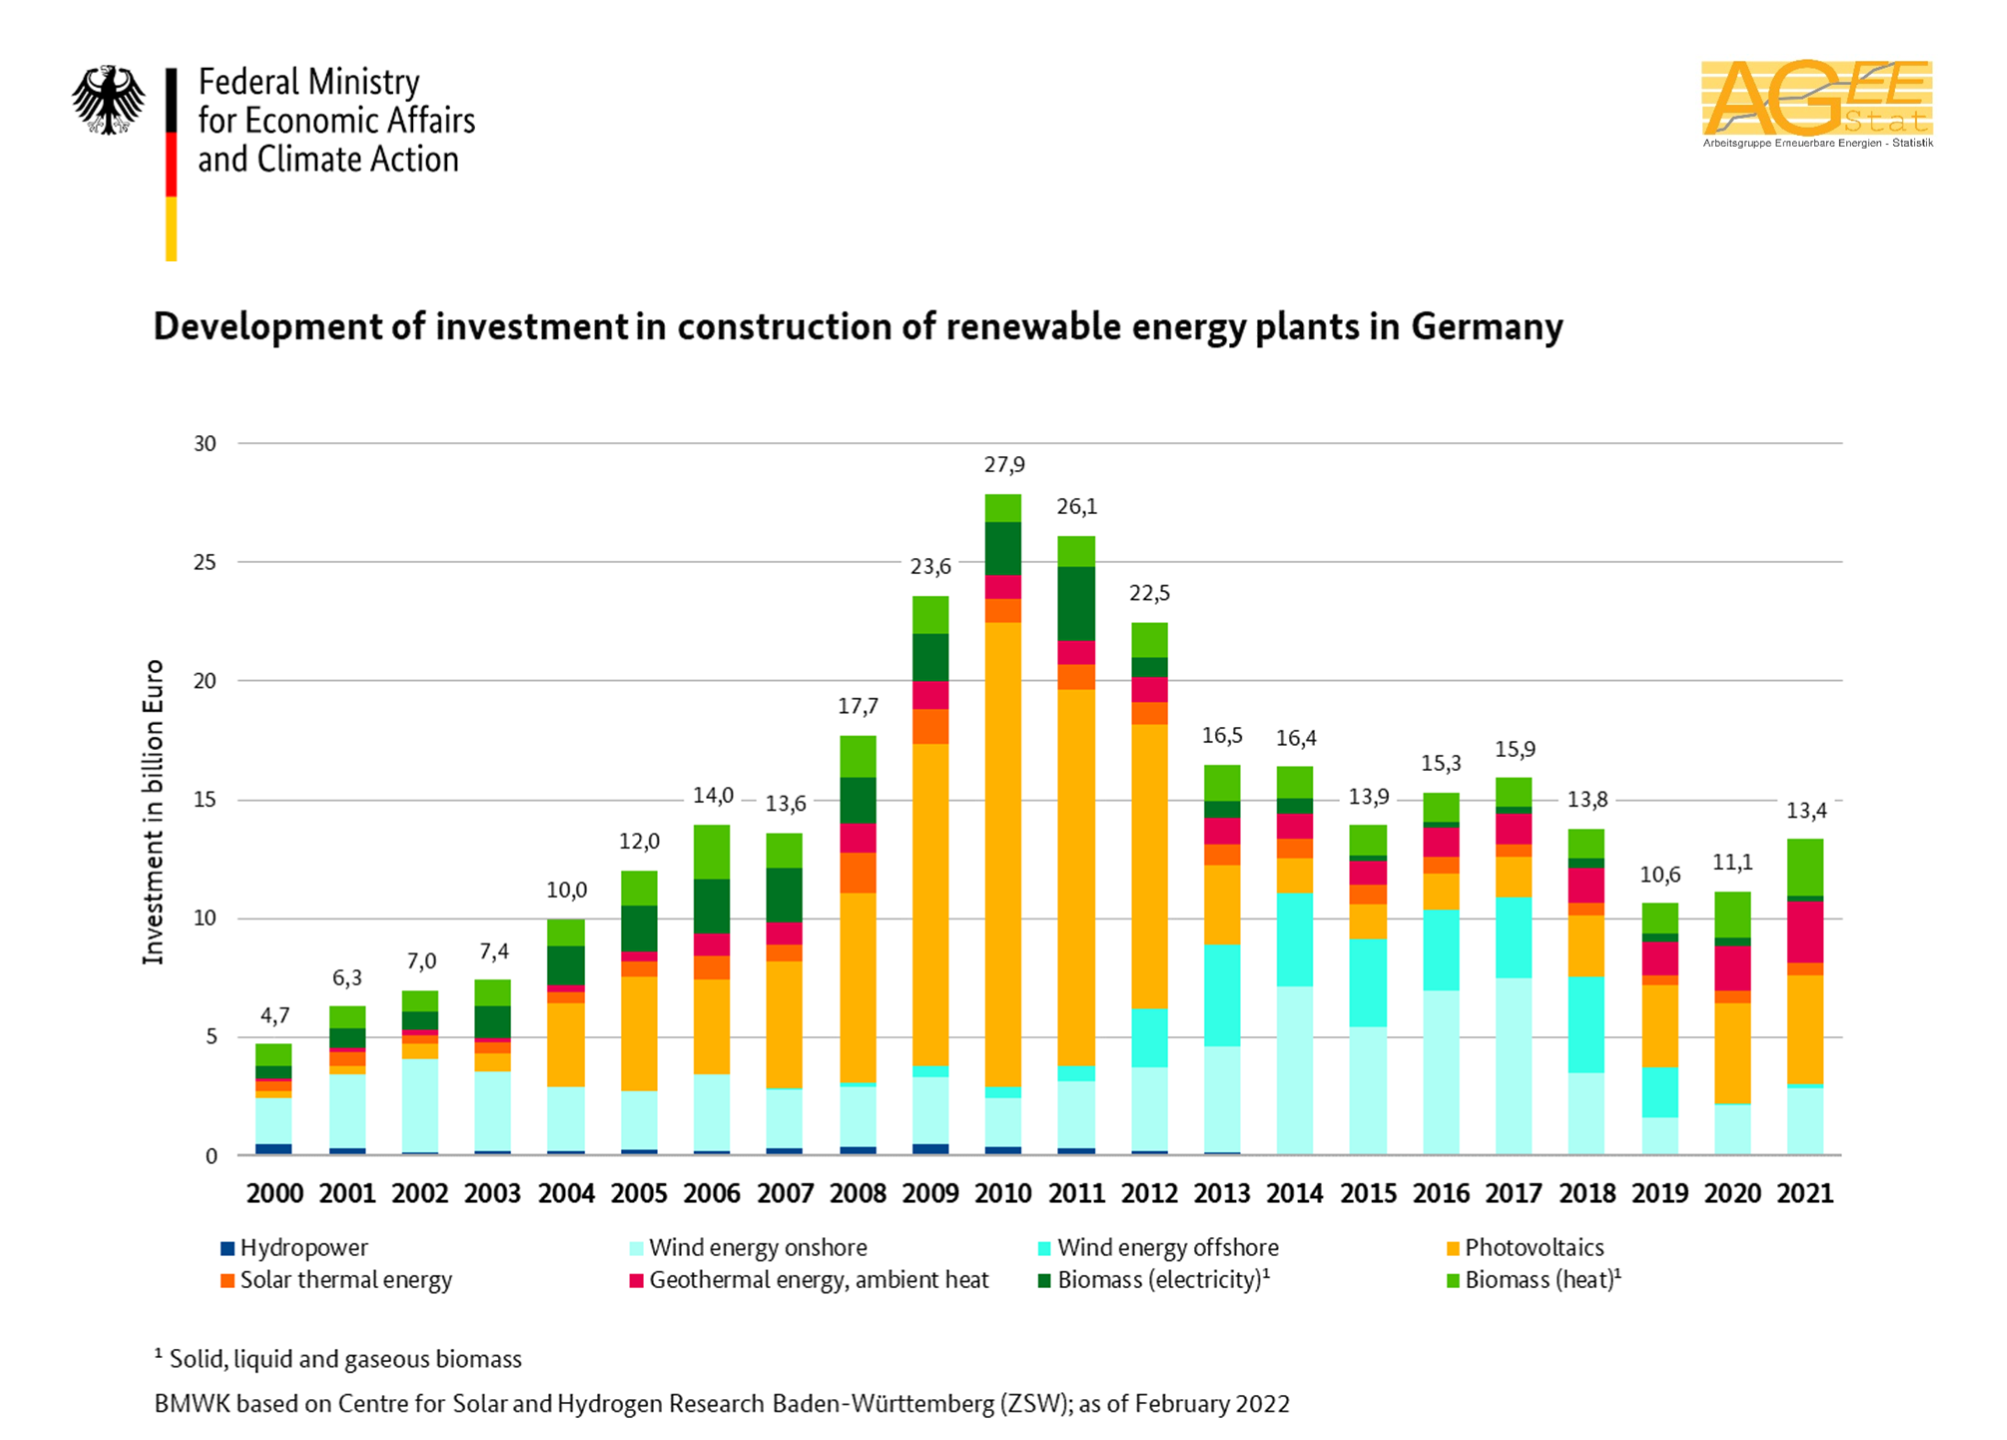 Development of renewable energy in Germany 2017